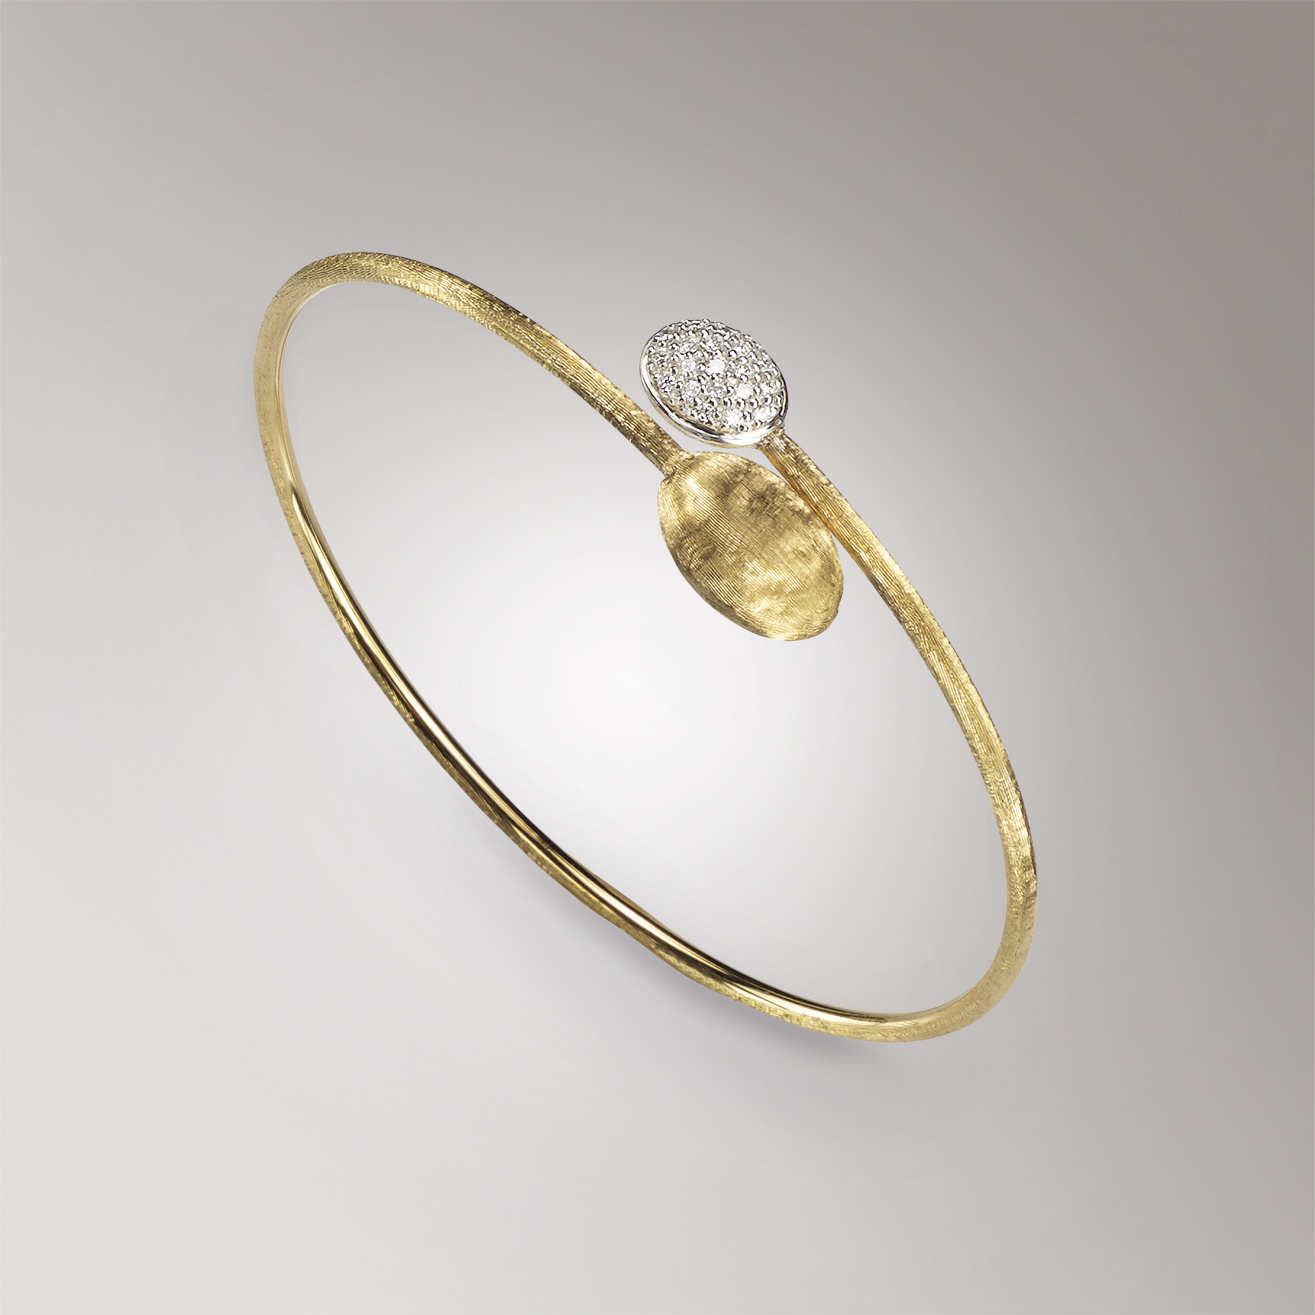 Marco Bicego Siviglia Gold & Diamond Bangle